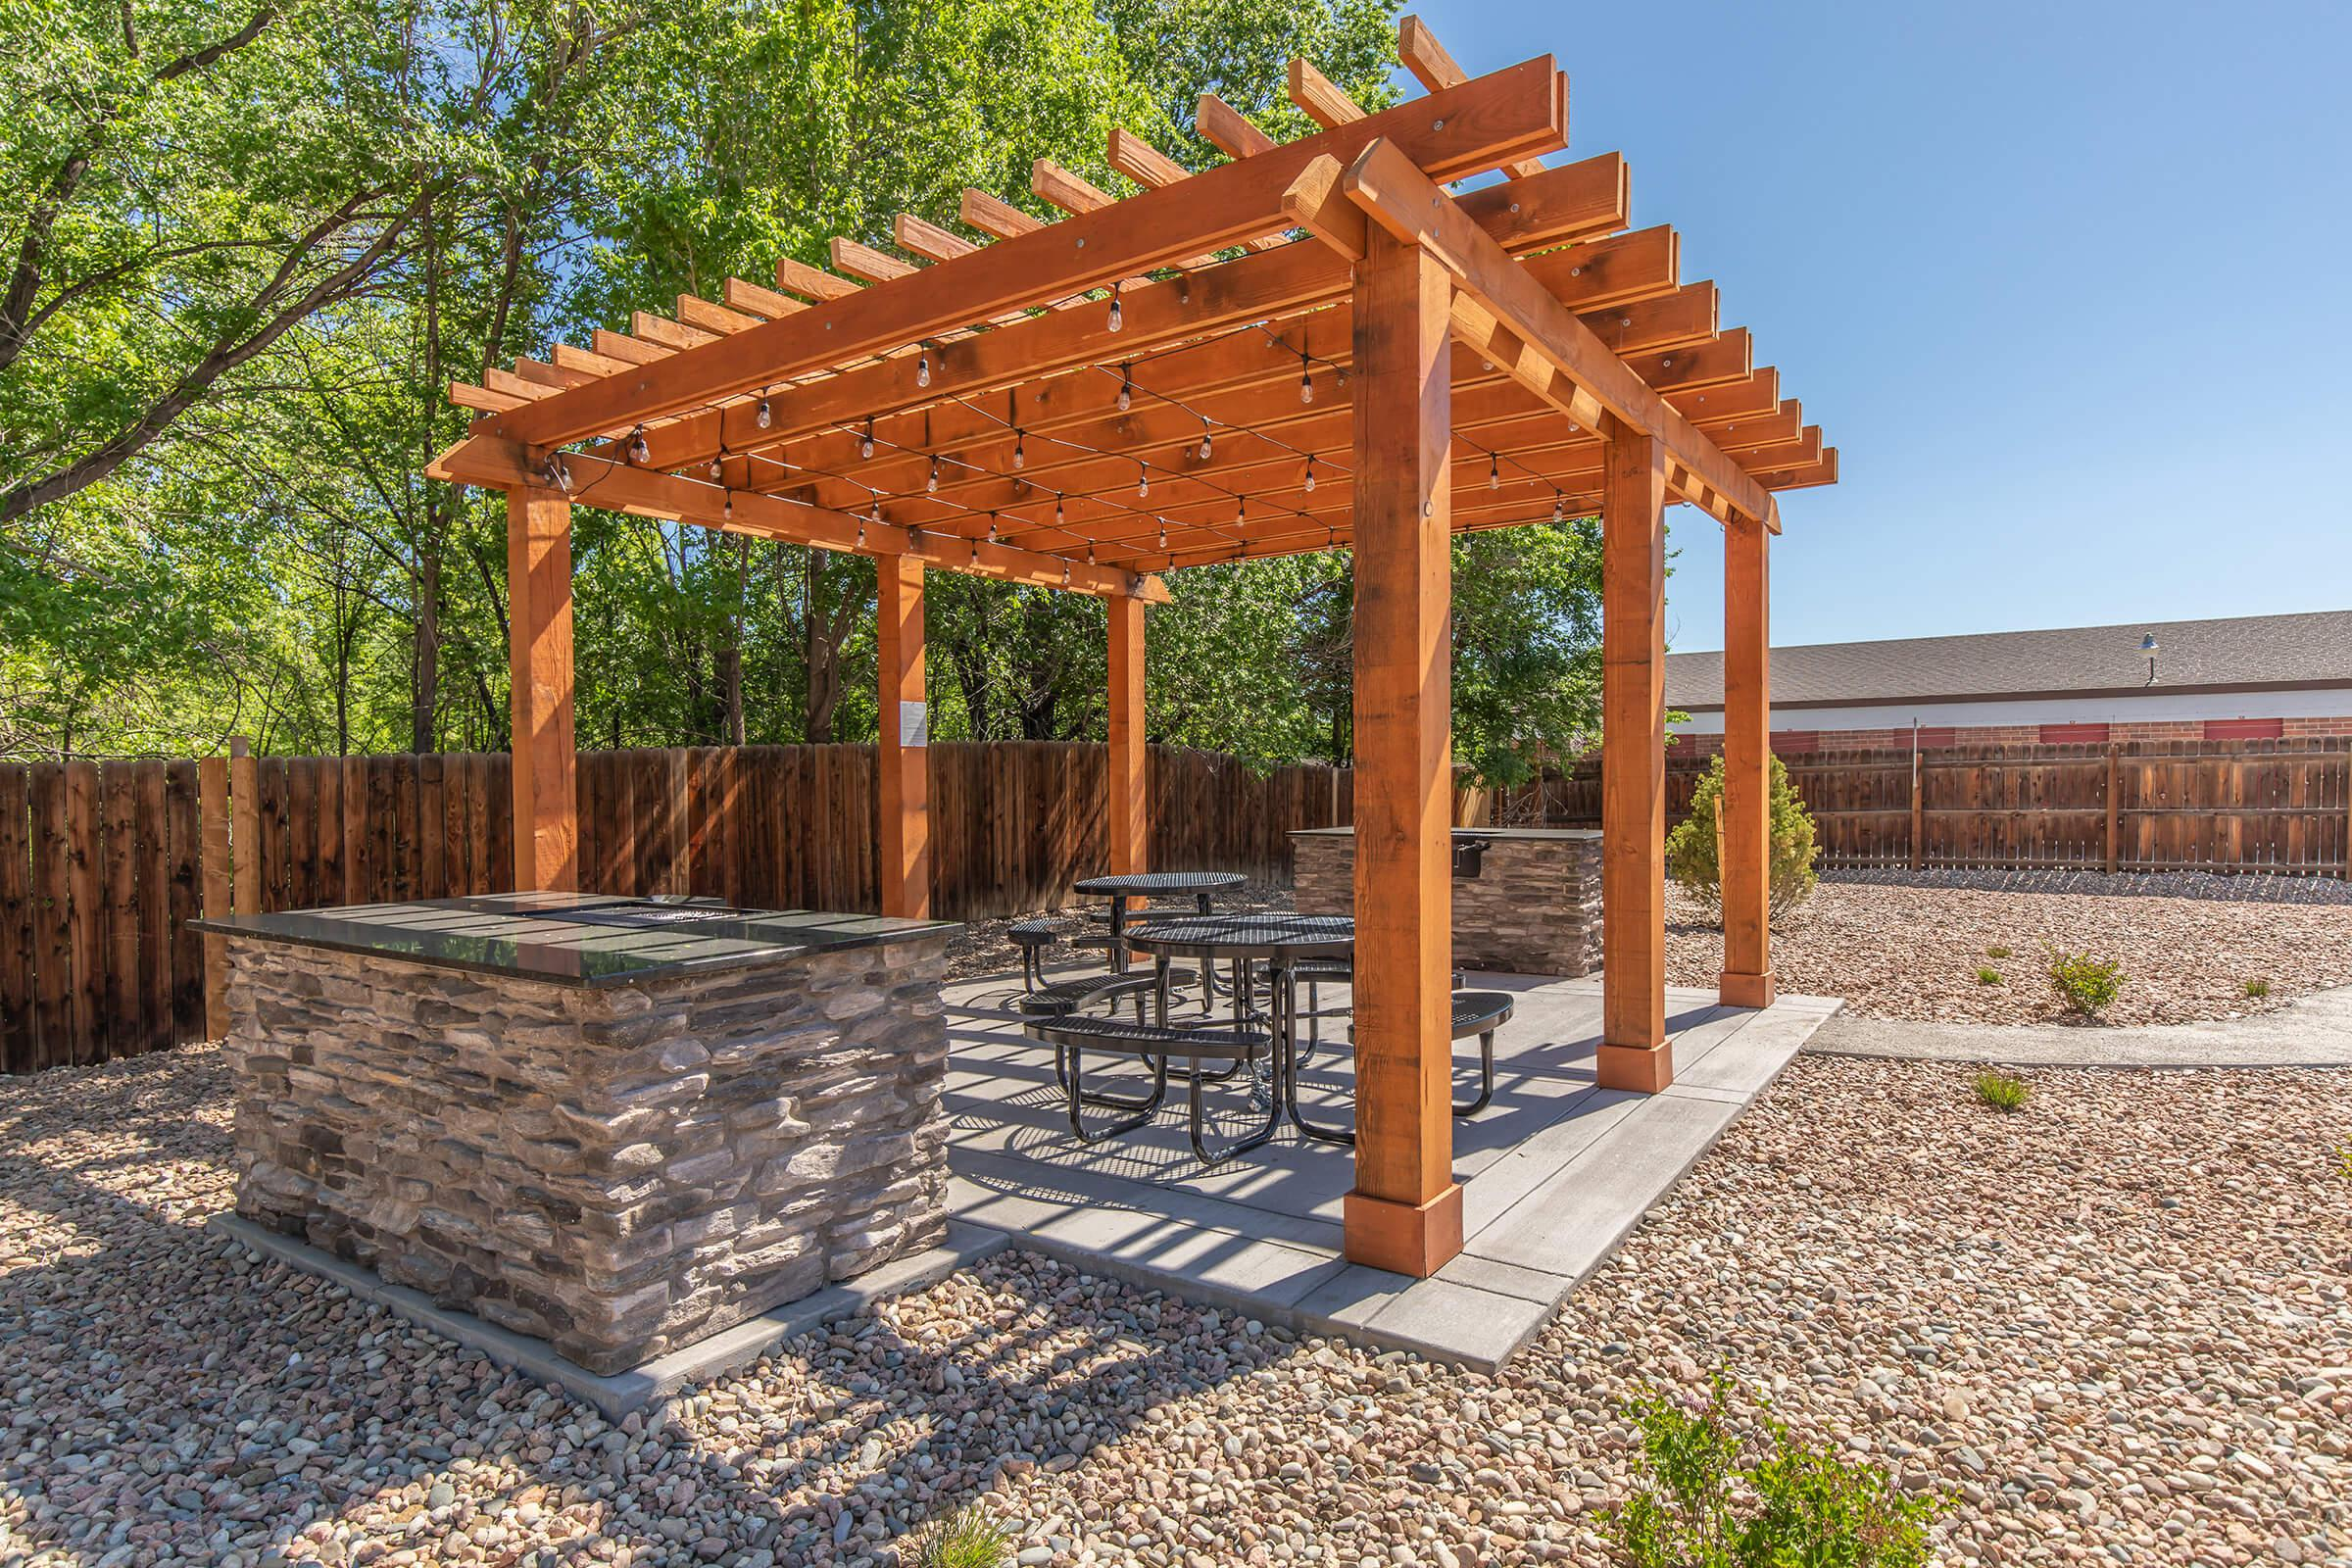 CREATE GREAT MEALS AT THE PICNIC AREA WITH BARBECUE